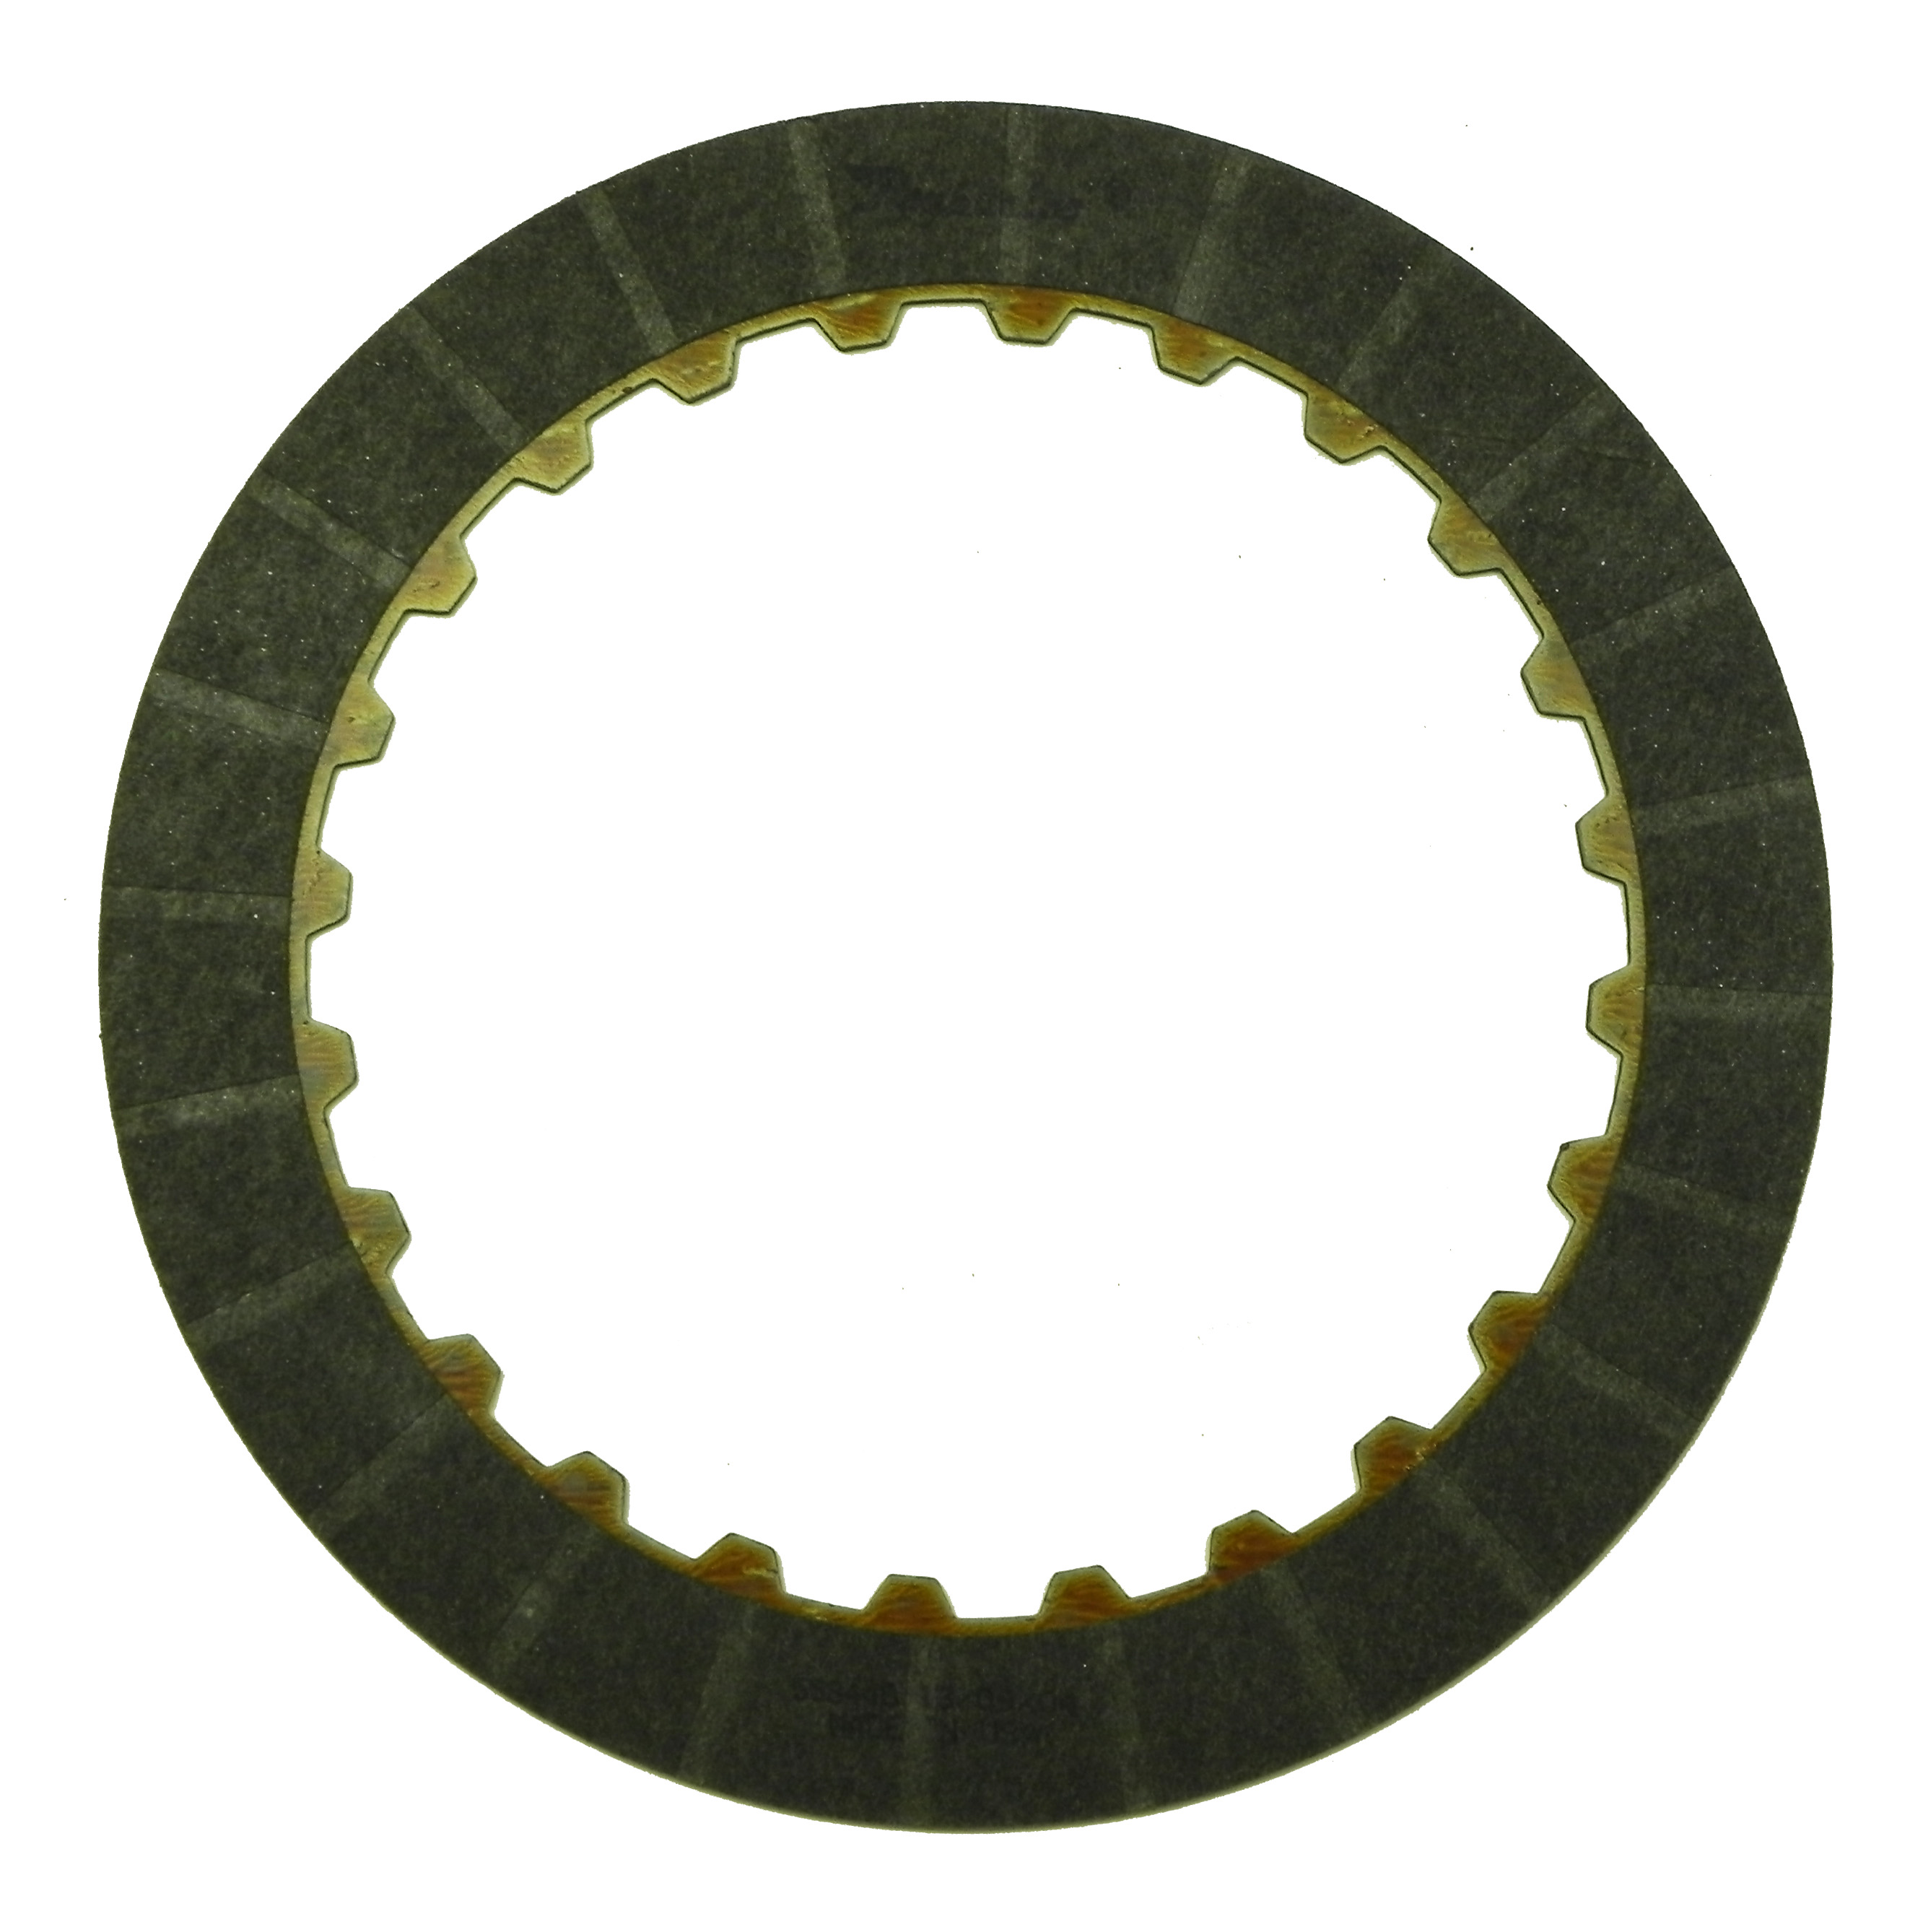 R558440 | 1999-ON Friction Clutch Plate High Energy Intermediate, Single Sided, ID Spline High Energy